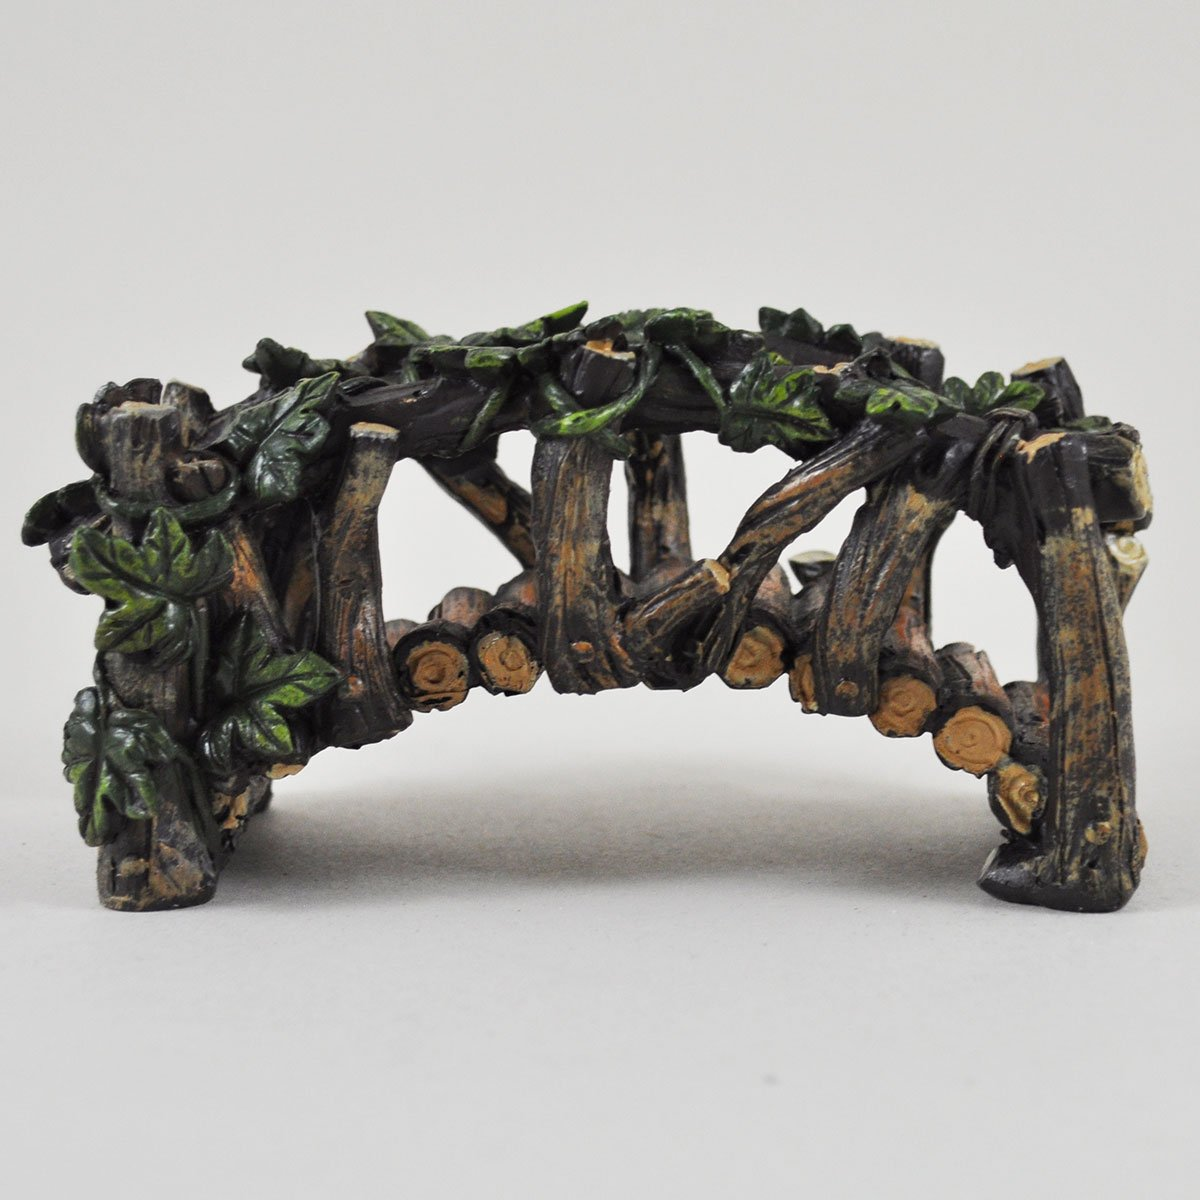 Fairy Garden UK Wooden Bridge Garden Miniature Home Decor - Fairy Elf Pixie Hobbit Magical Gift Idea - Length: 13cm Fiesta Studios